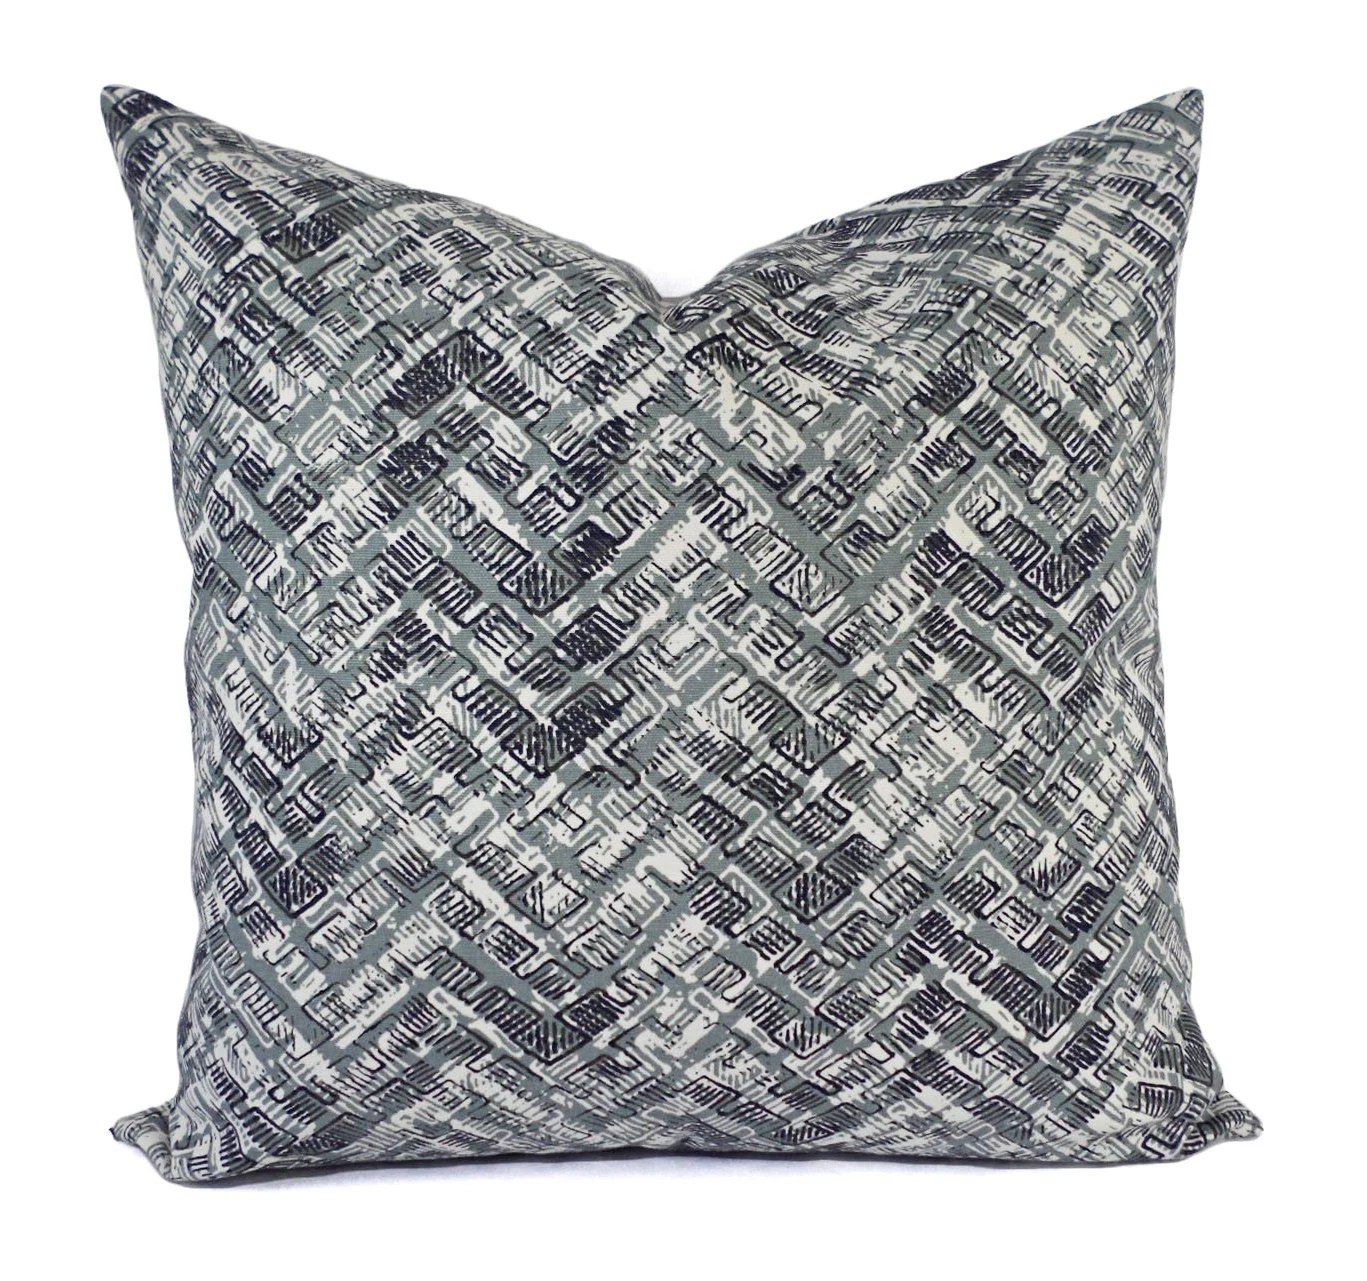 Two Pillow Covers Grey and Brown Throw Pillows Modern